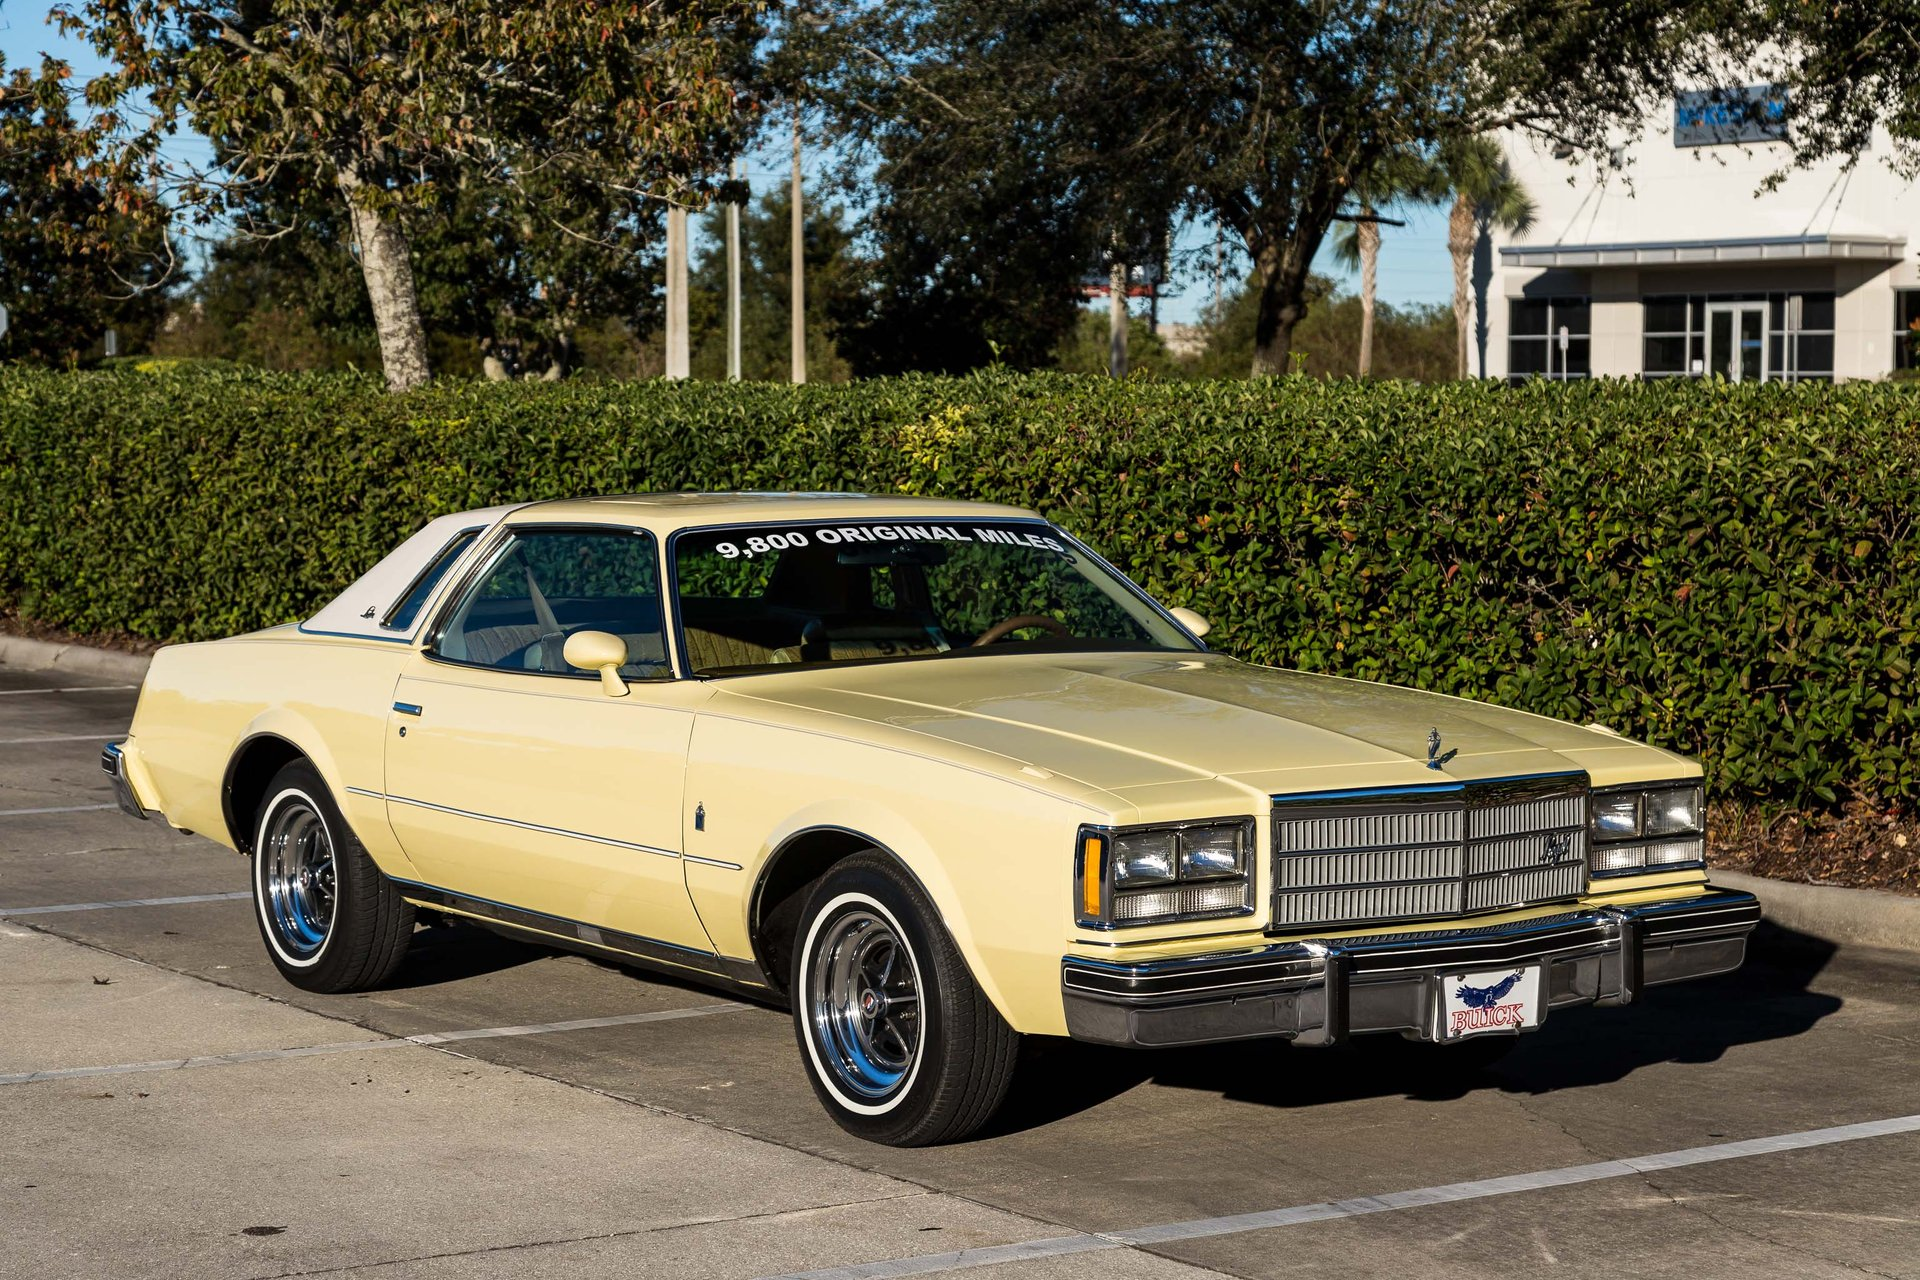 1977 Buick Regal Landau